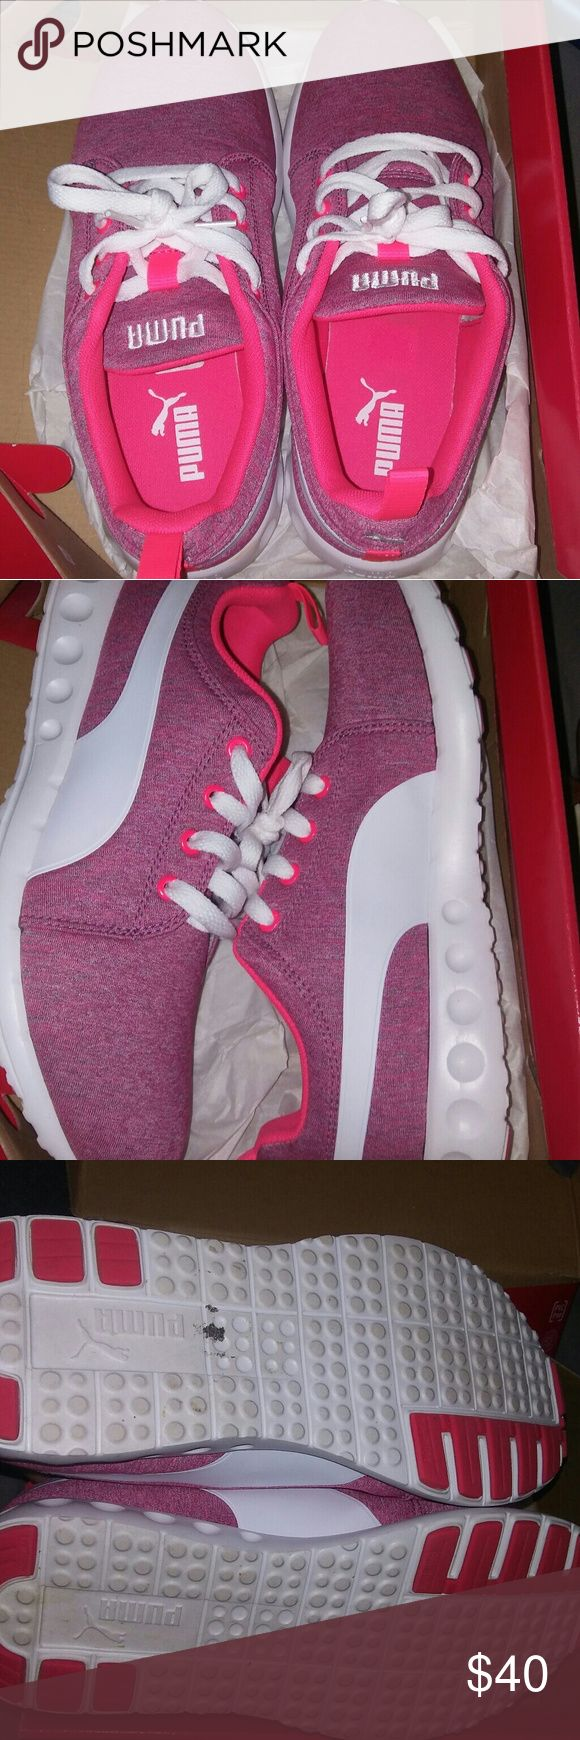 Pink puma's 8.5 Pink pumas women's 8.5 worn maybe 3 times Puma Shoes